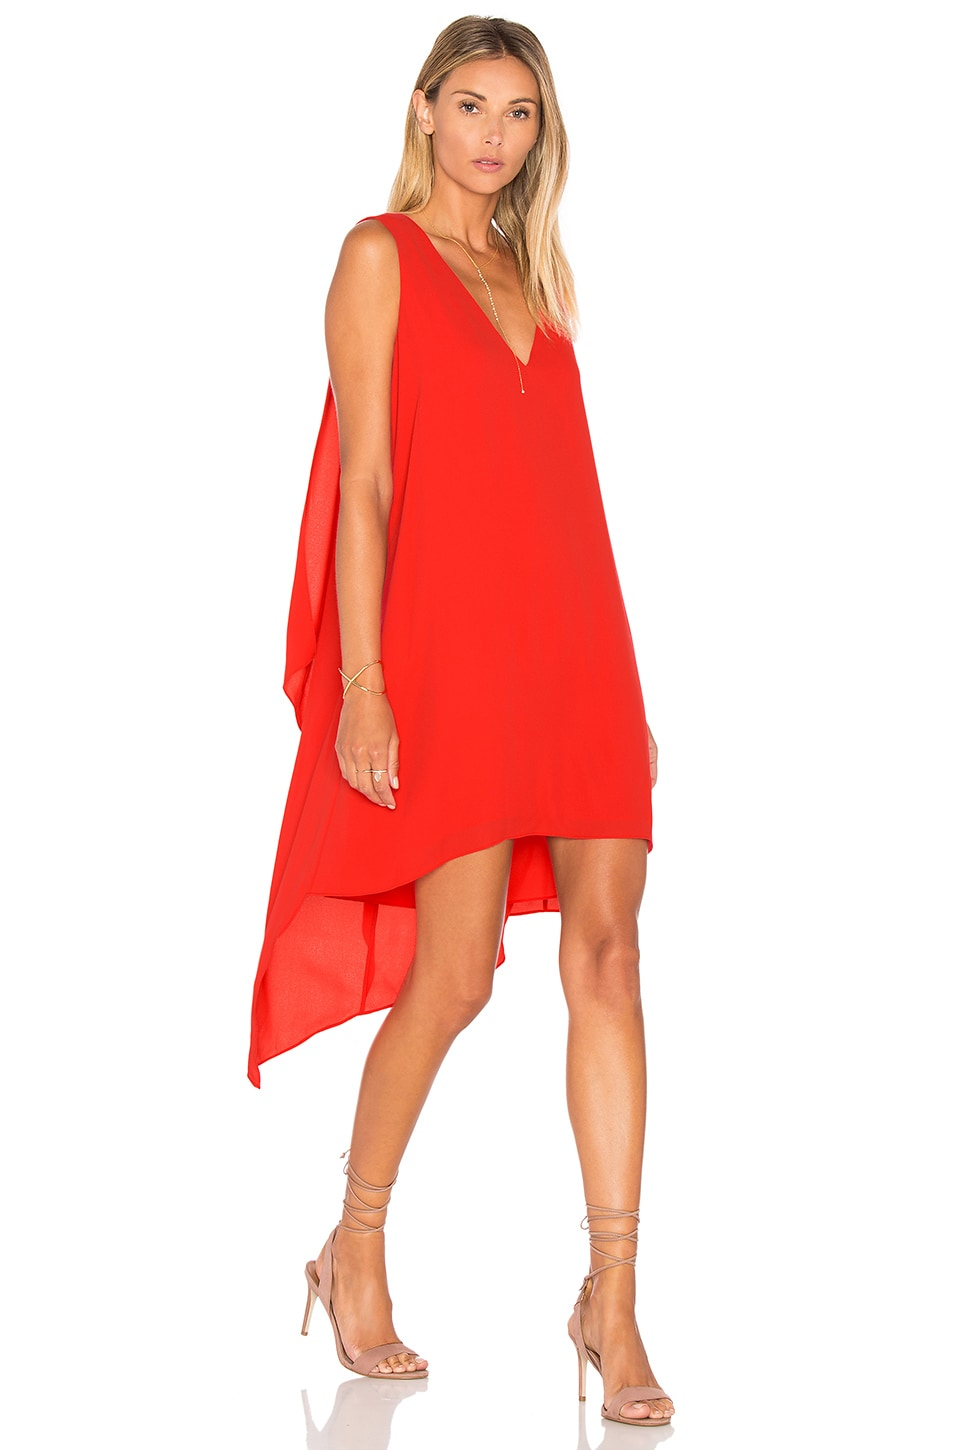 Bcbg dress red berry